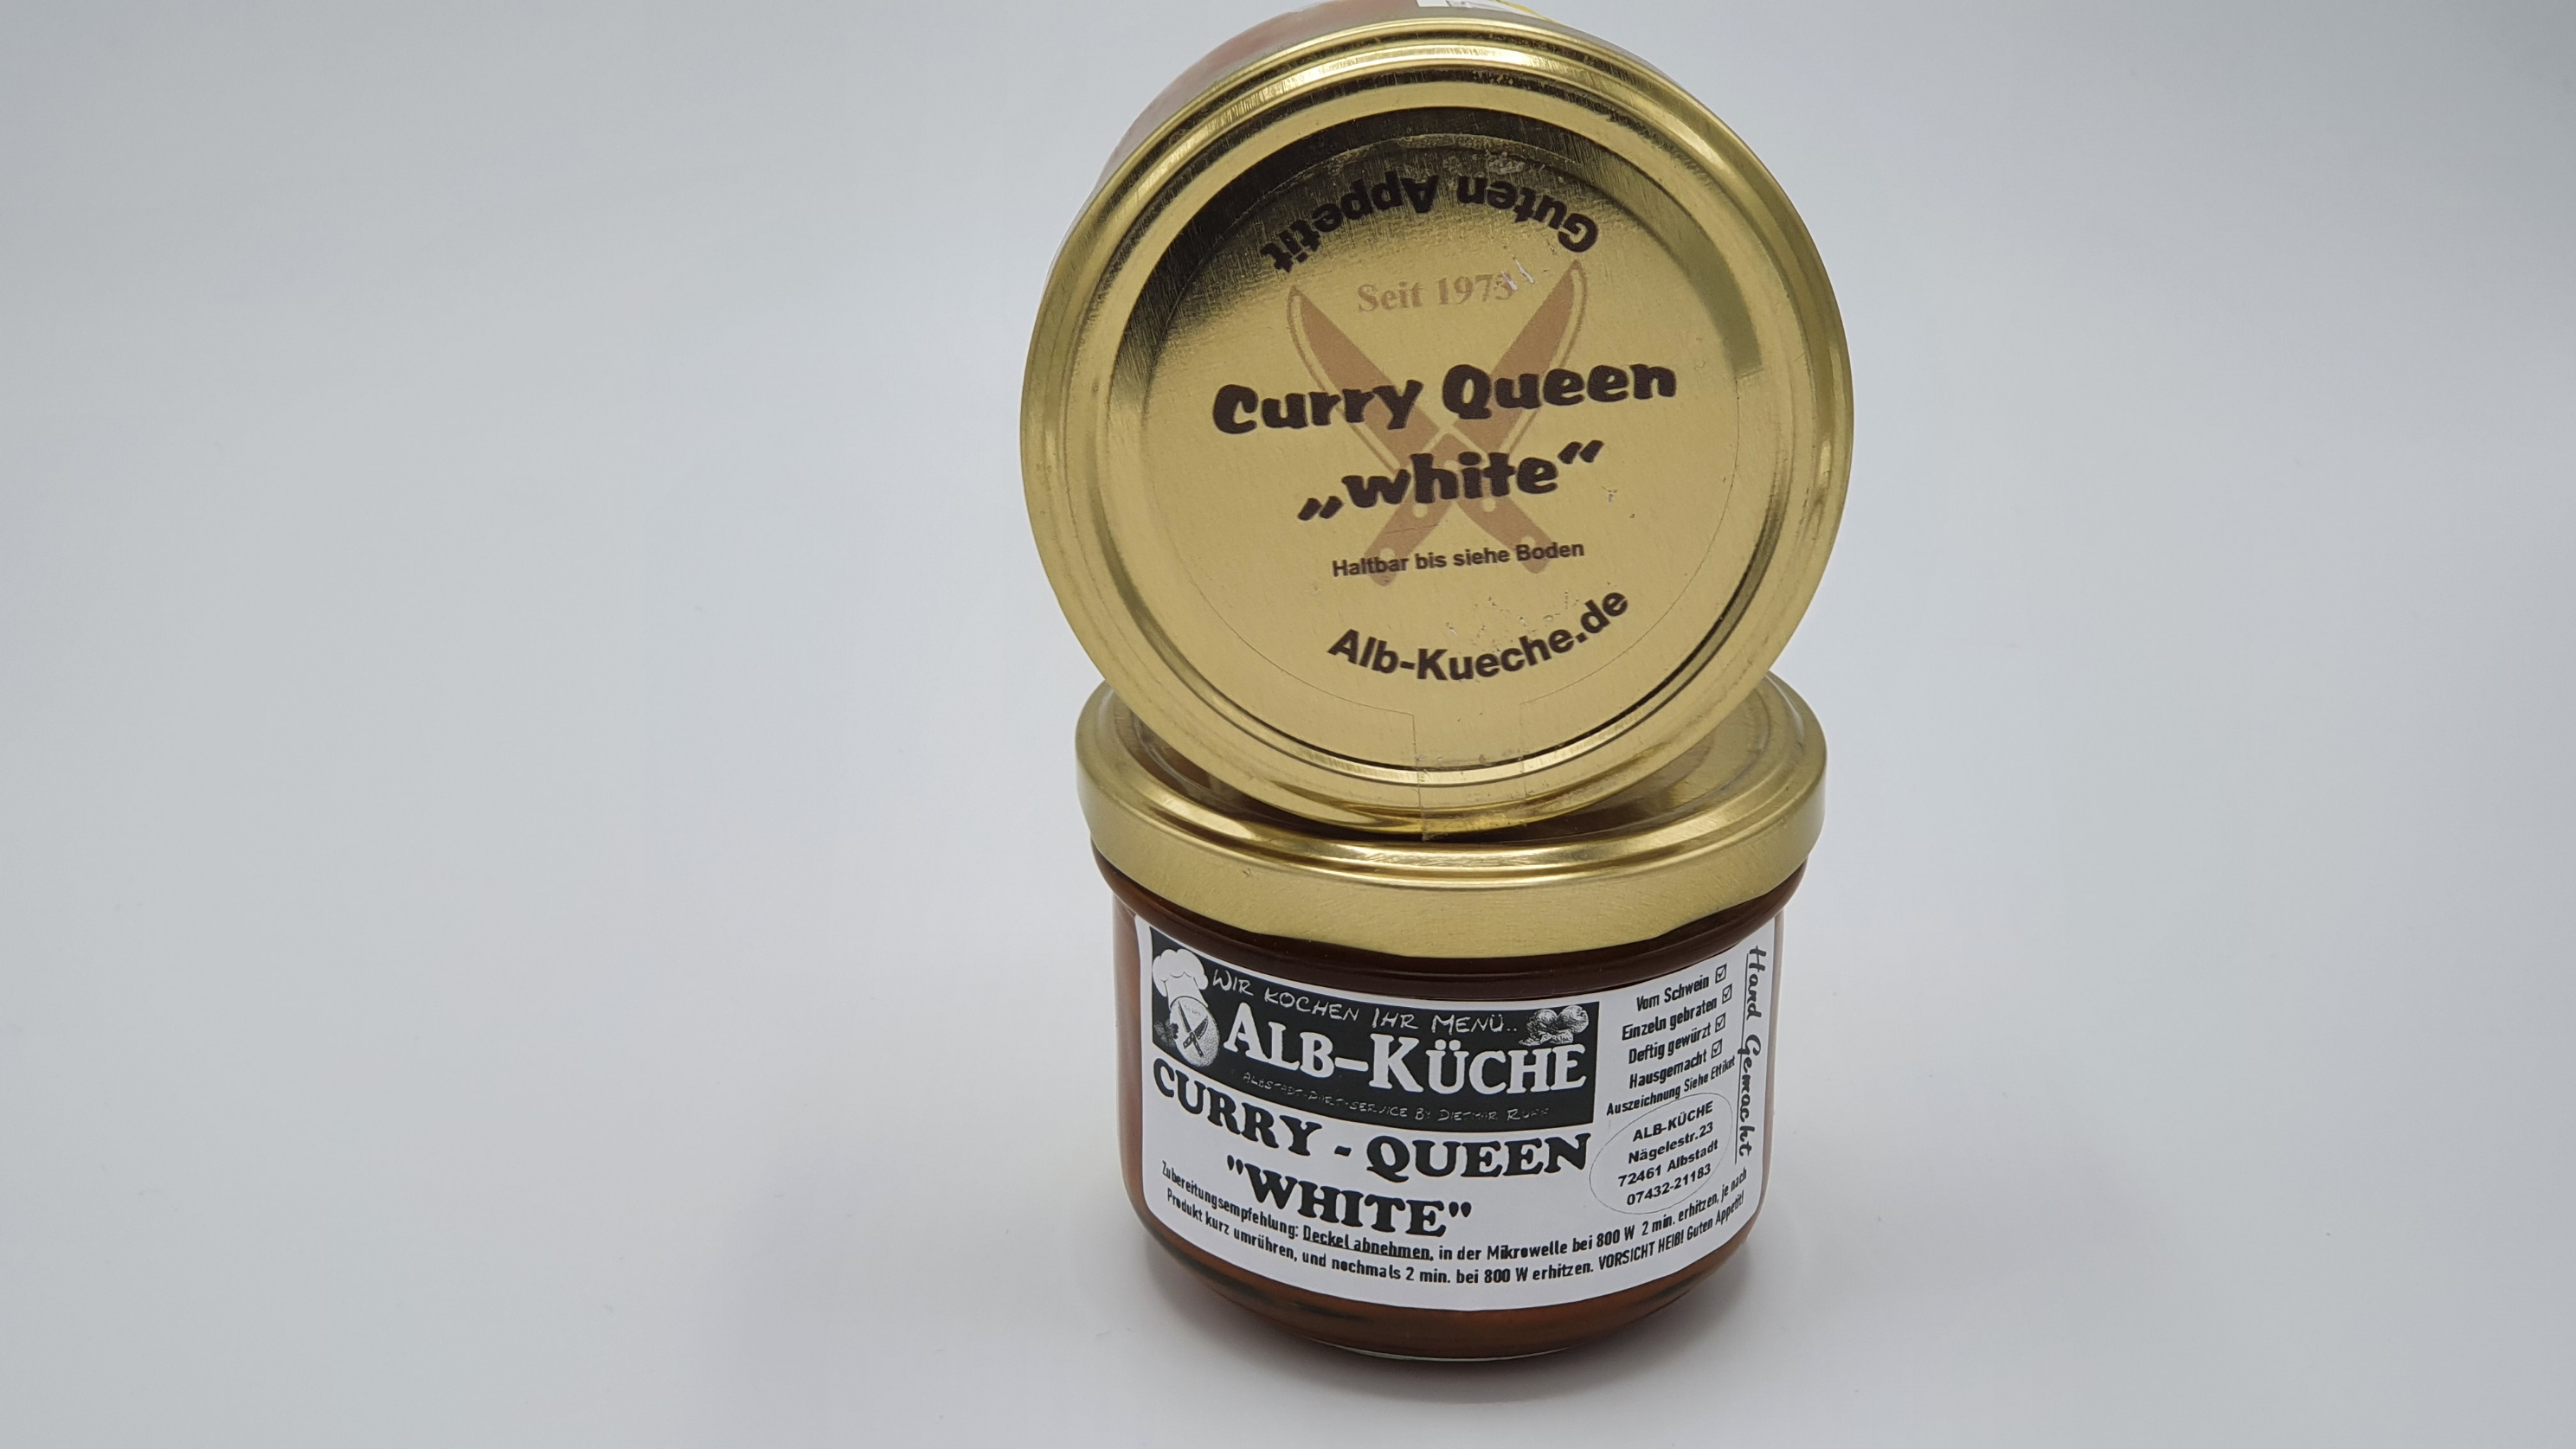 Currywurst Curry Queen White